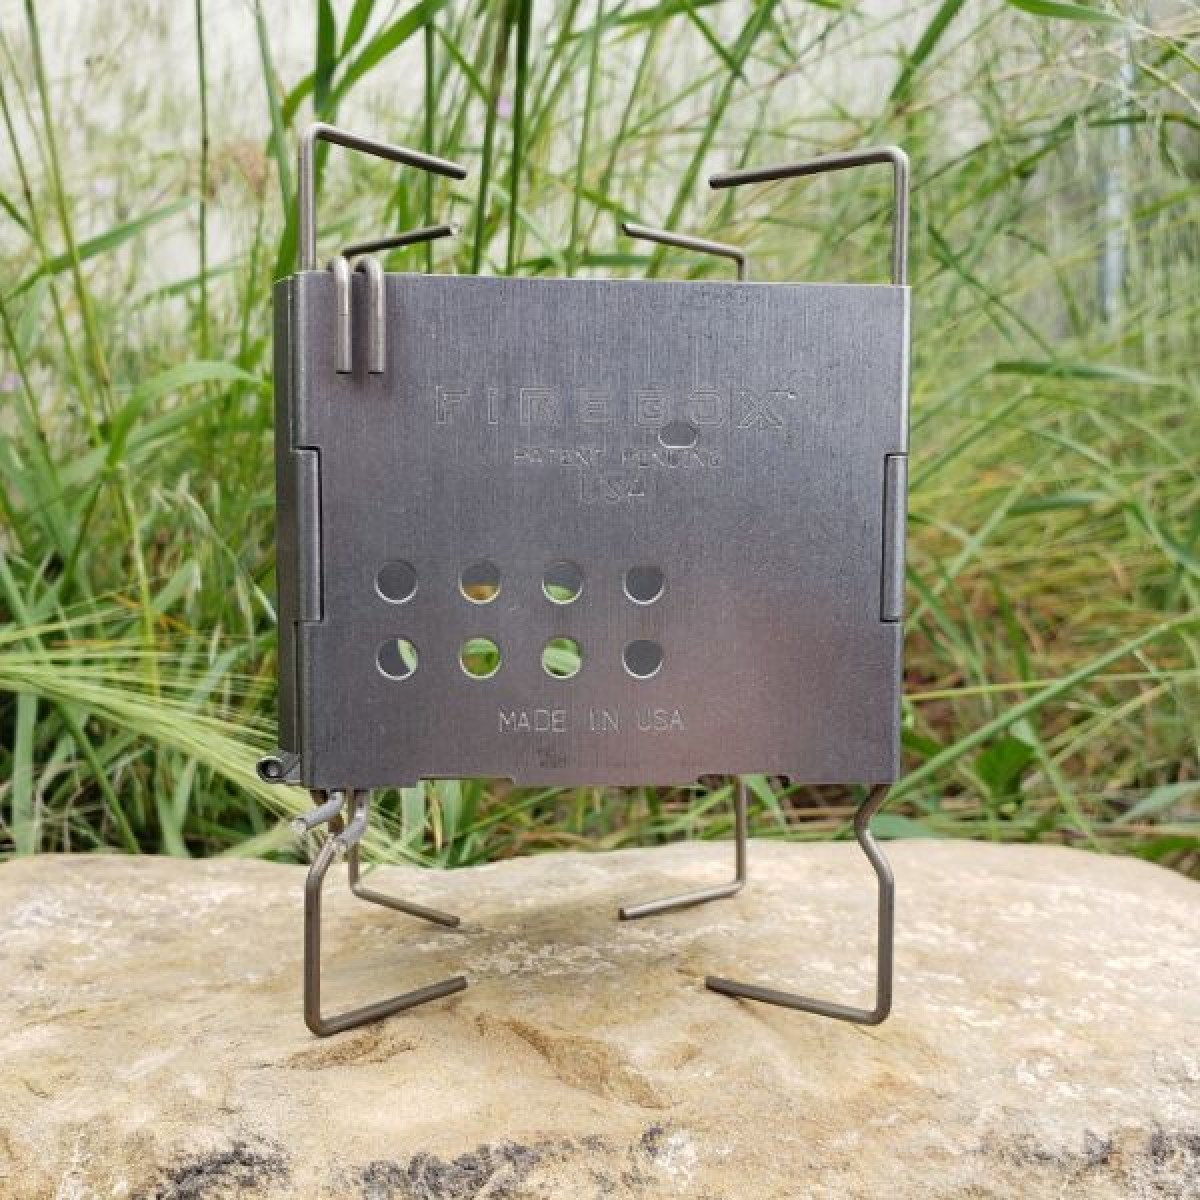 Firebox Gen2 Stainless Firebox Nano Ultralight Stove